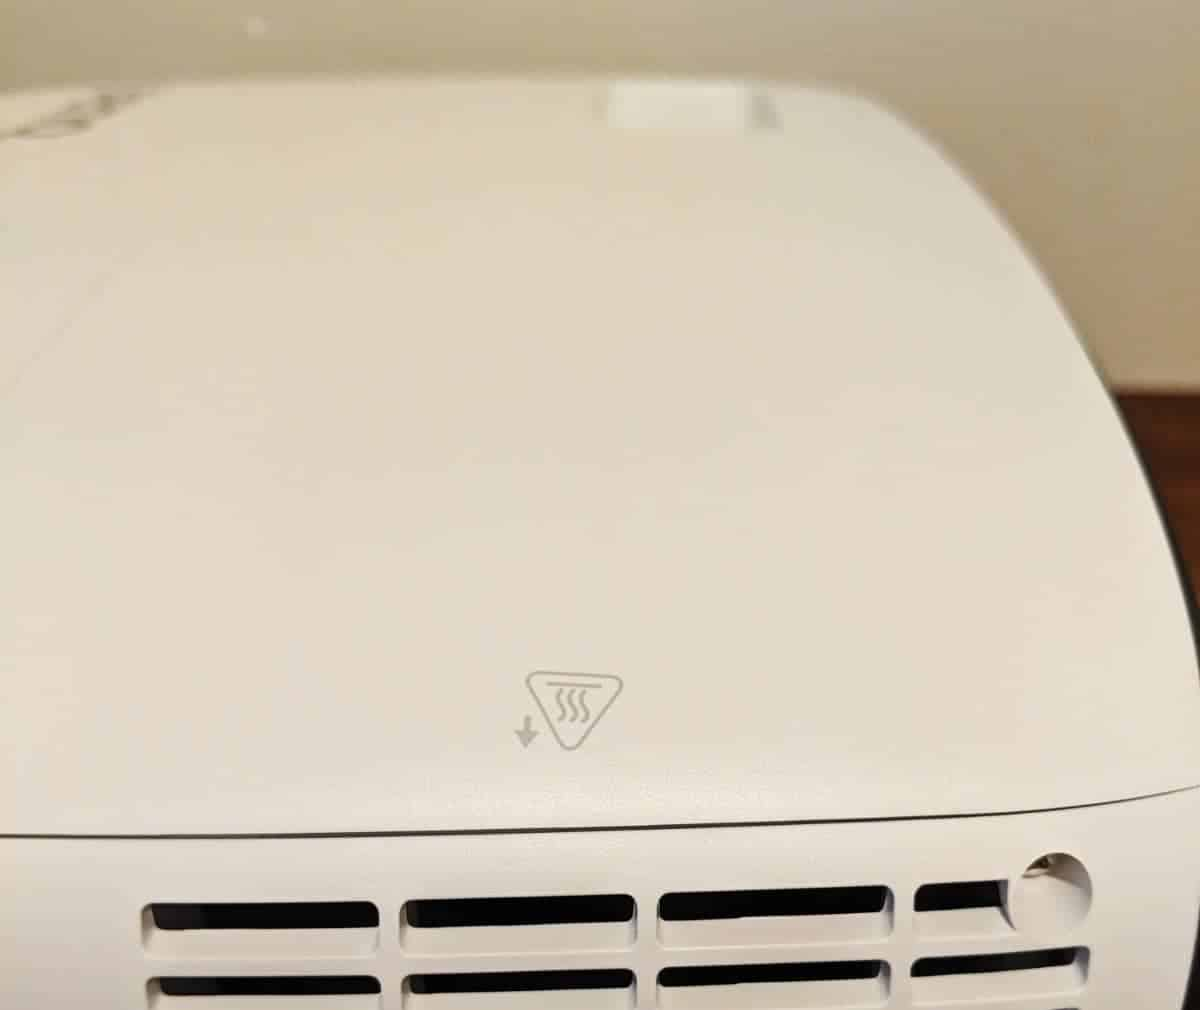 BenQ-W1700-Photos-04 BenQ W1700 4K Projector Review